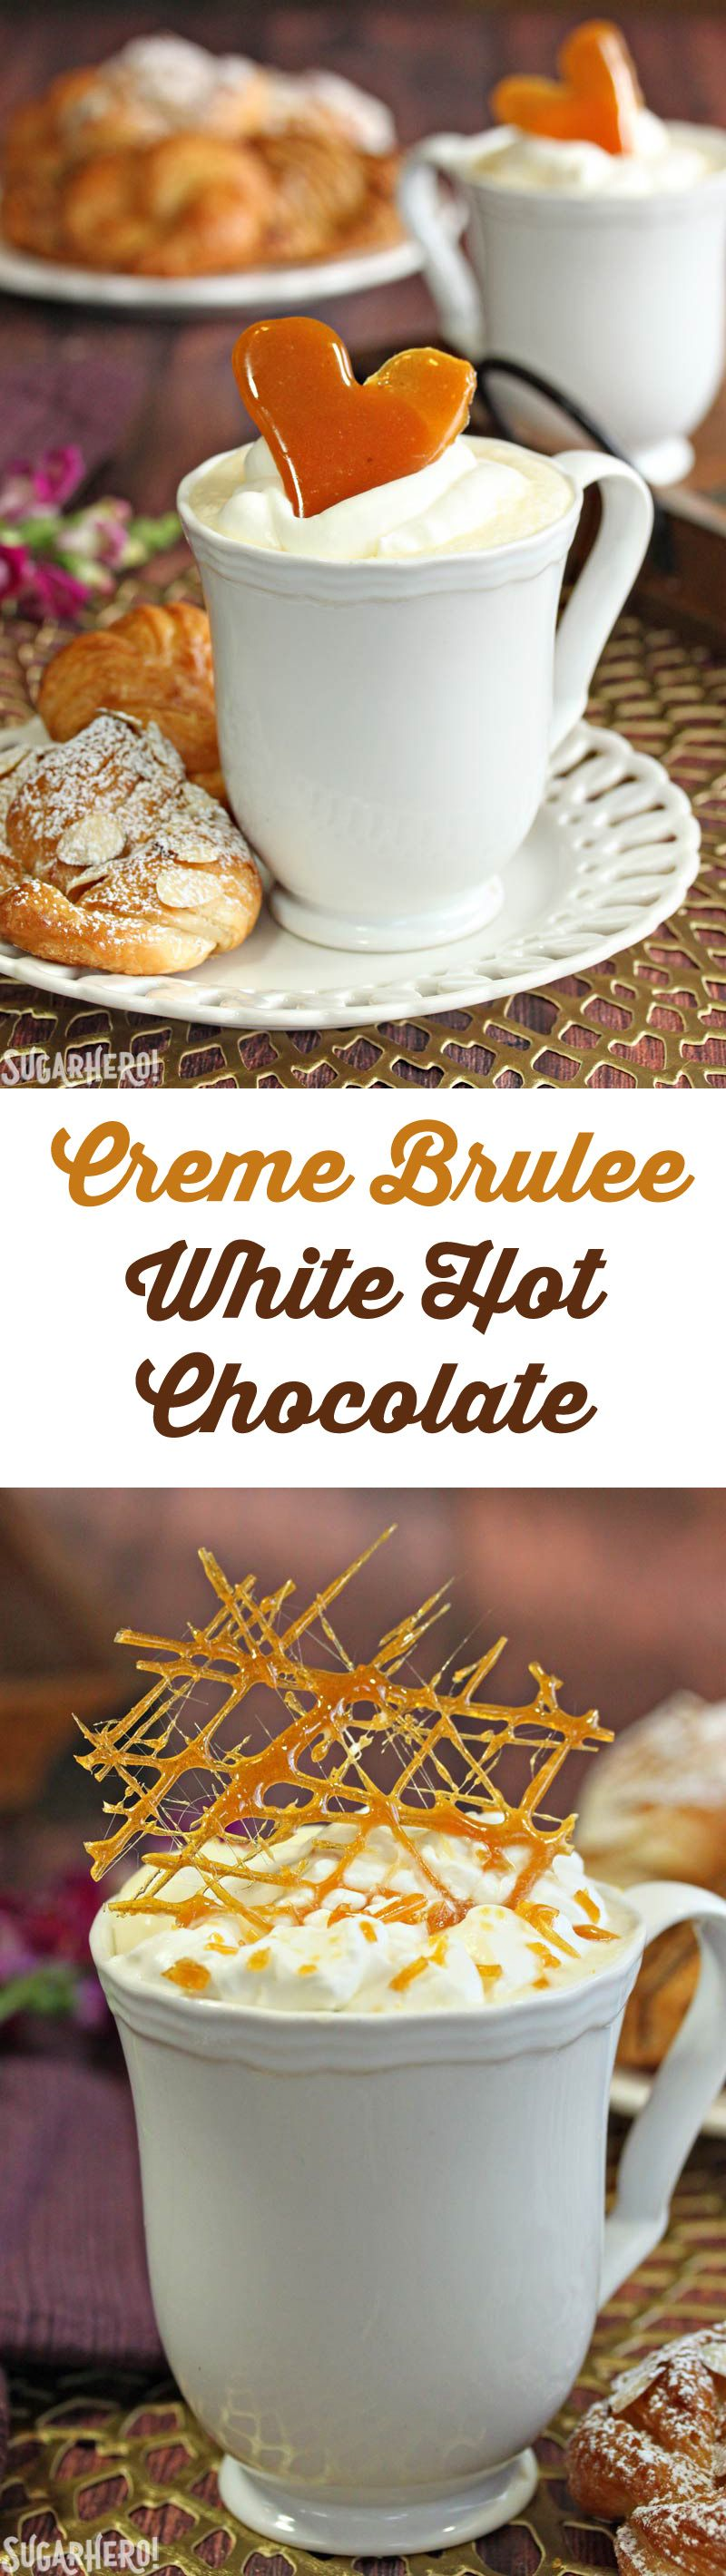 Making hot chocolate for a crowd - Creme Brulee White Hot Chocolate